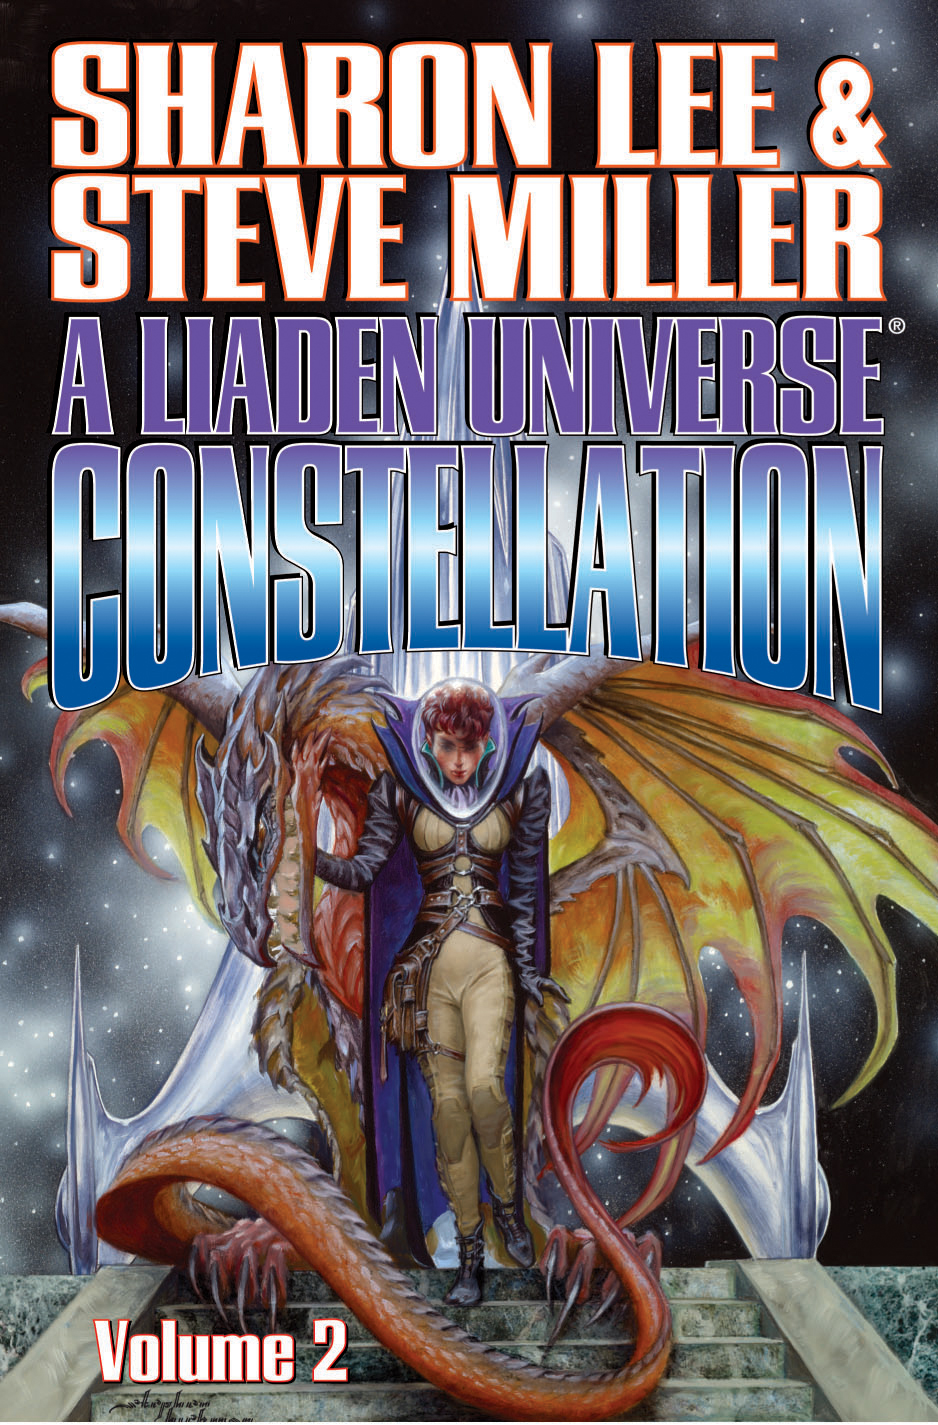 Liaden-universe-constellation-9781451639445_hr